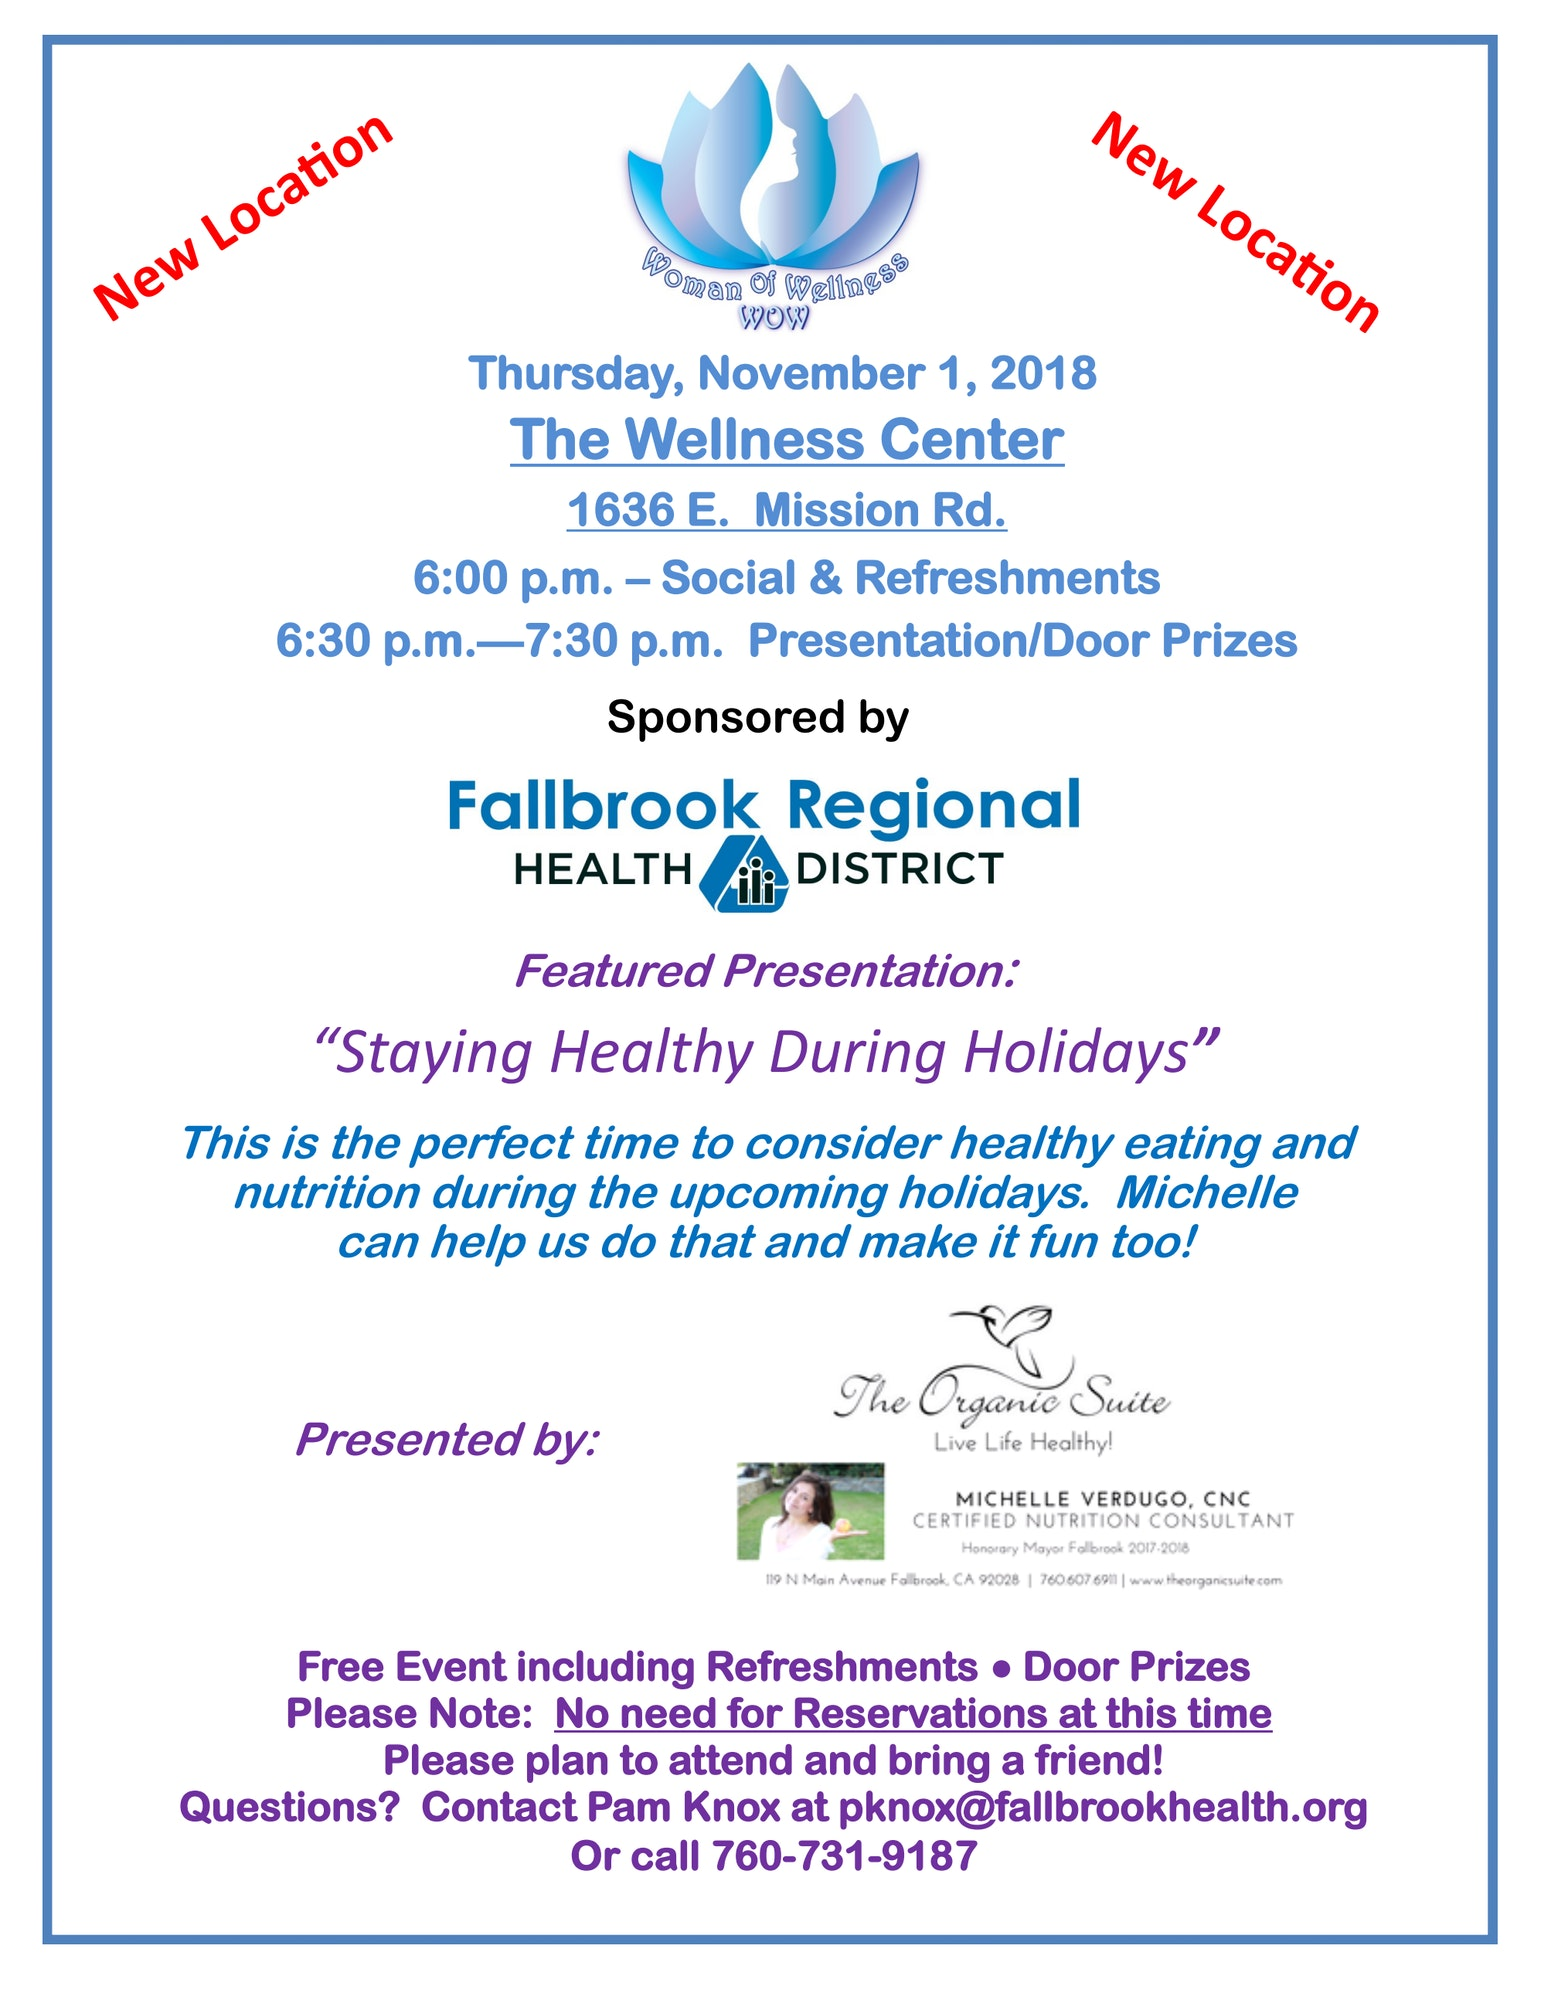 """Thursday, November 1, 2018 The Wellness Center 1636 E. Mission Rd. 6:00 p.m. Featured Presentation: """"Staying Healthy During Holidays"""" This is the perfect time to consider healthy eating and nutrition during the upcoming holidays. Michelle Verdugo, CNC"""